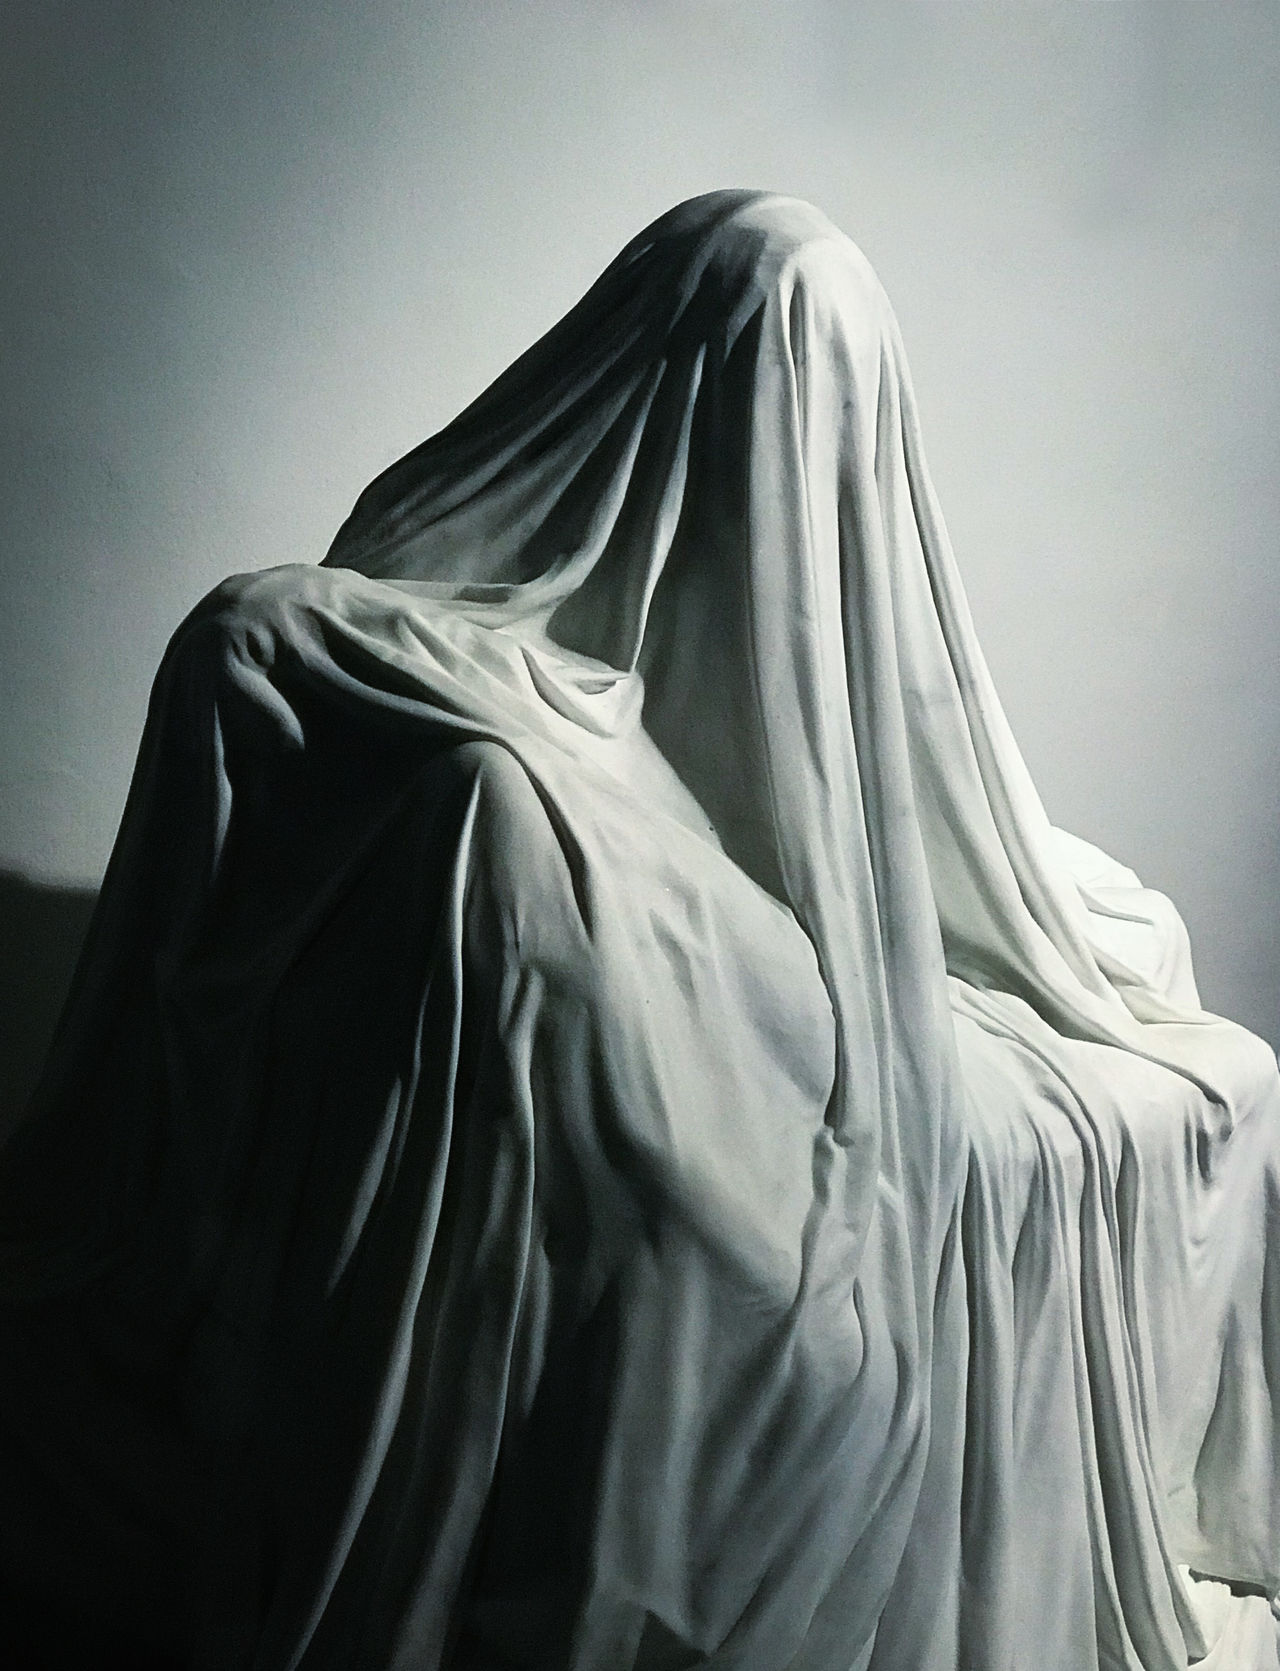 ArtWork Christian Christianity Death Gothic Grief Religious art believe black and white covered holding indoors minimal minimalism minimalobsession monochrome reincarnation religious spooky Statue textile veil white iPhone crop Second Acts Rethink Things